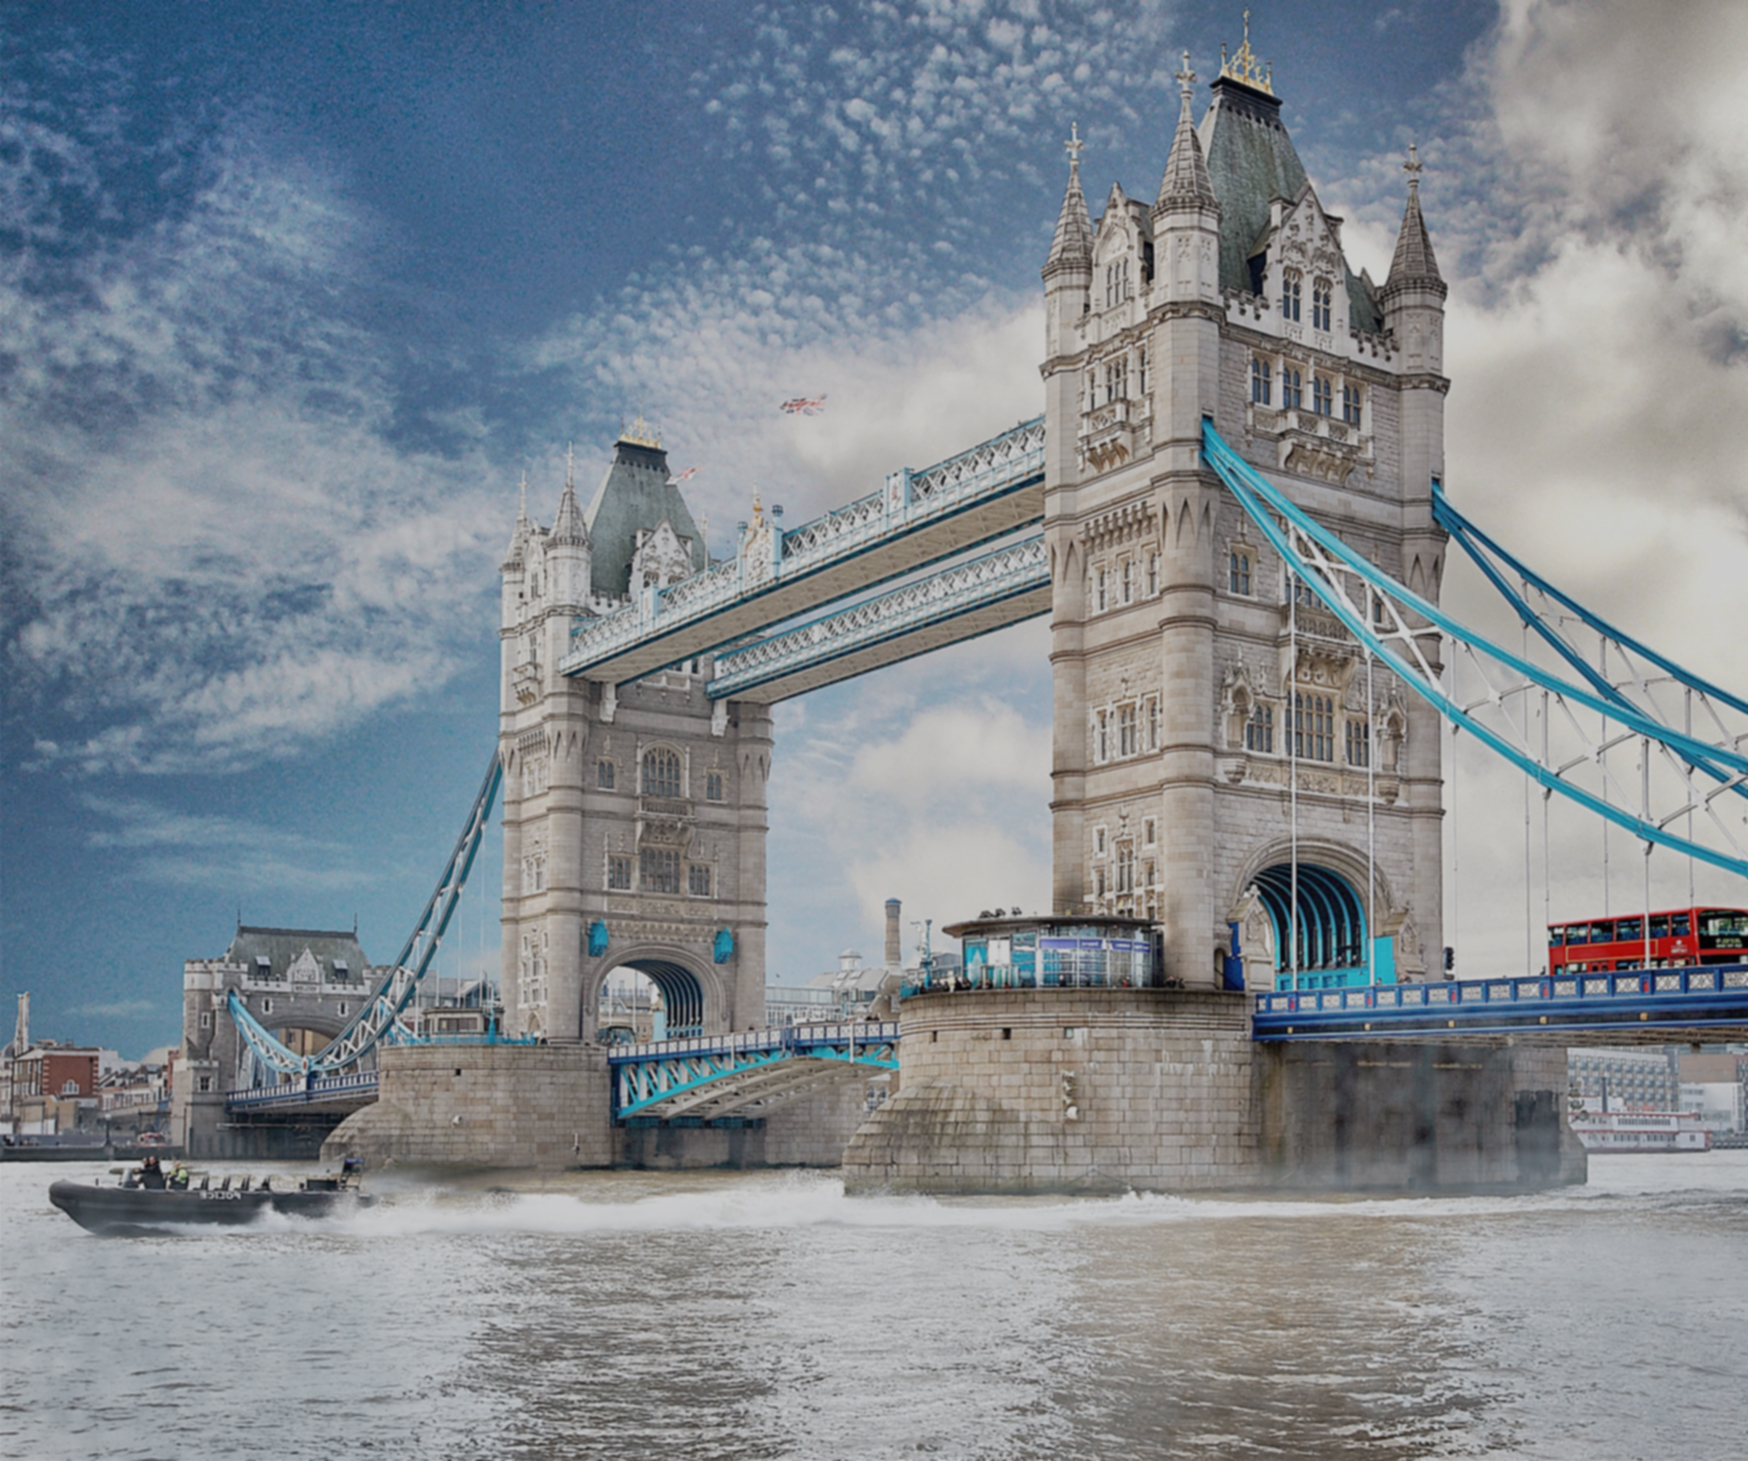 Image shows London Bridge in all its glory against a sunny but cloudy sky